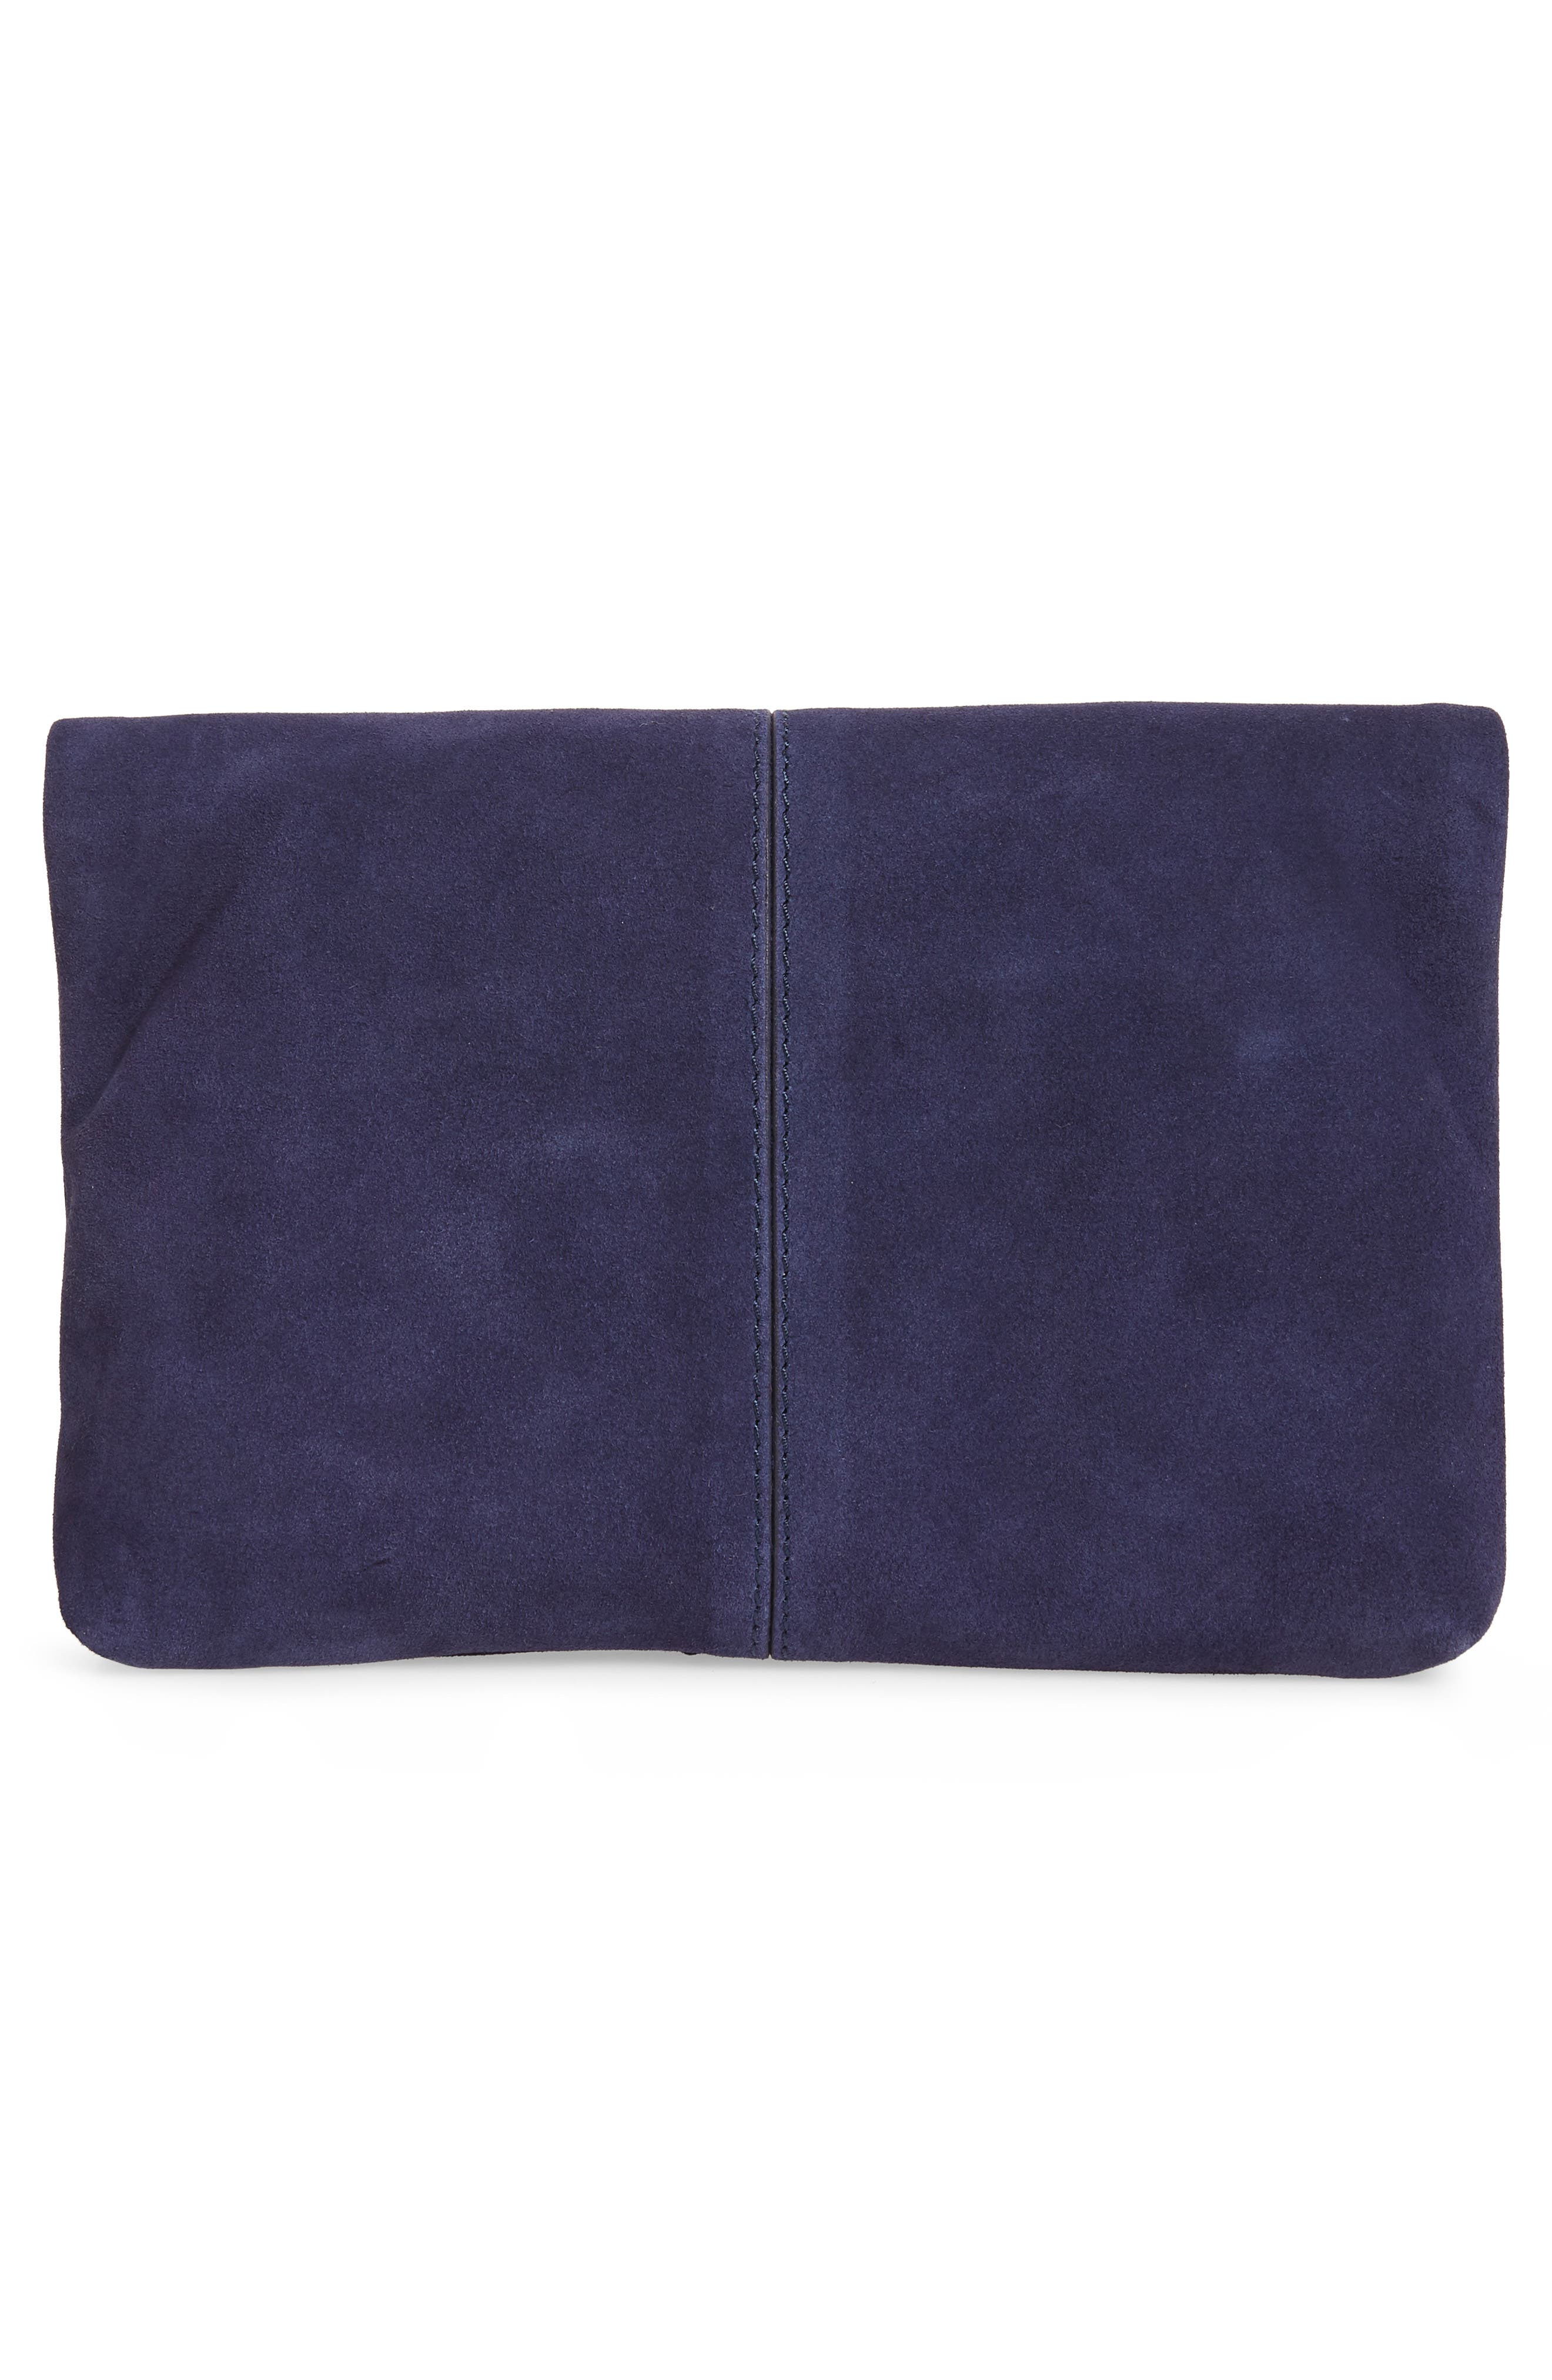 Suede Clutch,                             Alternate thumbnail 3, color,                             NAVY